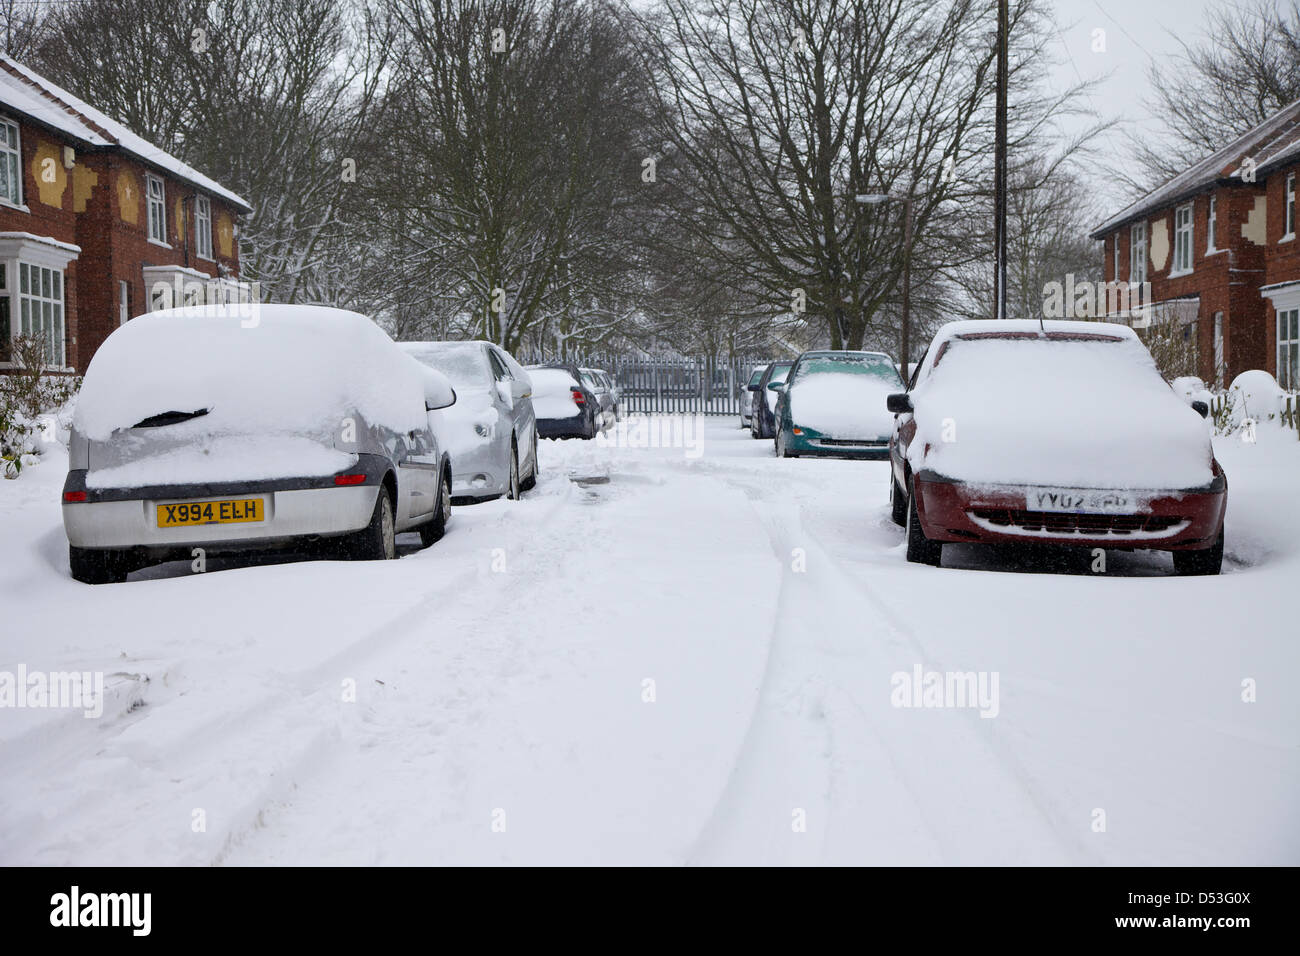 Rotherham, UK. 23rd March 2013. Snowbound. Residents of this Rotherham street face a long wait before the gritters - Stock Image